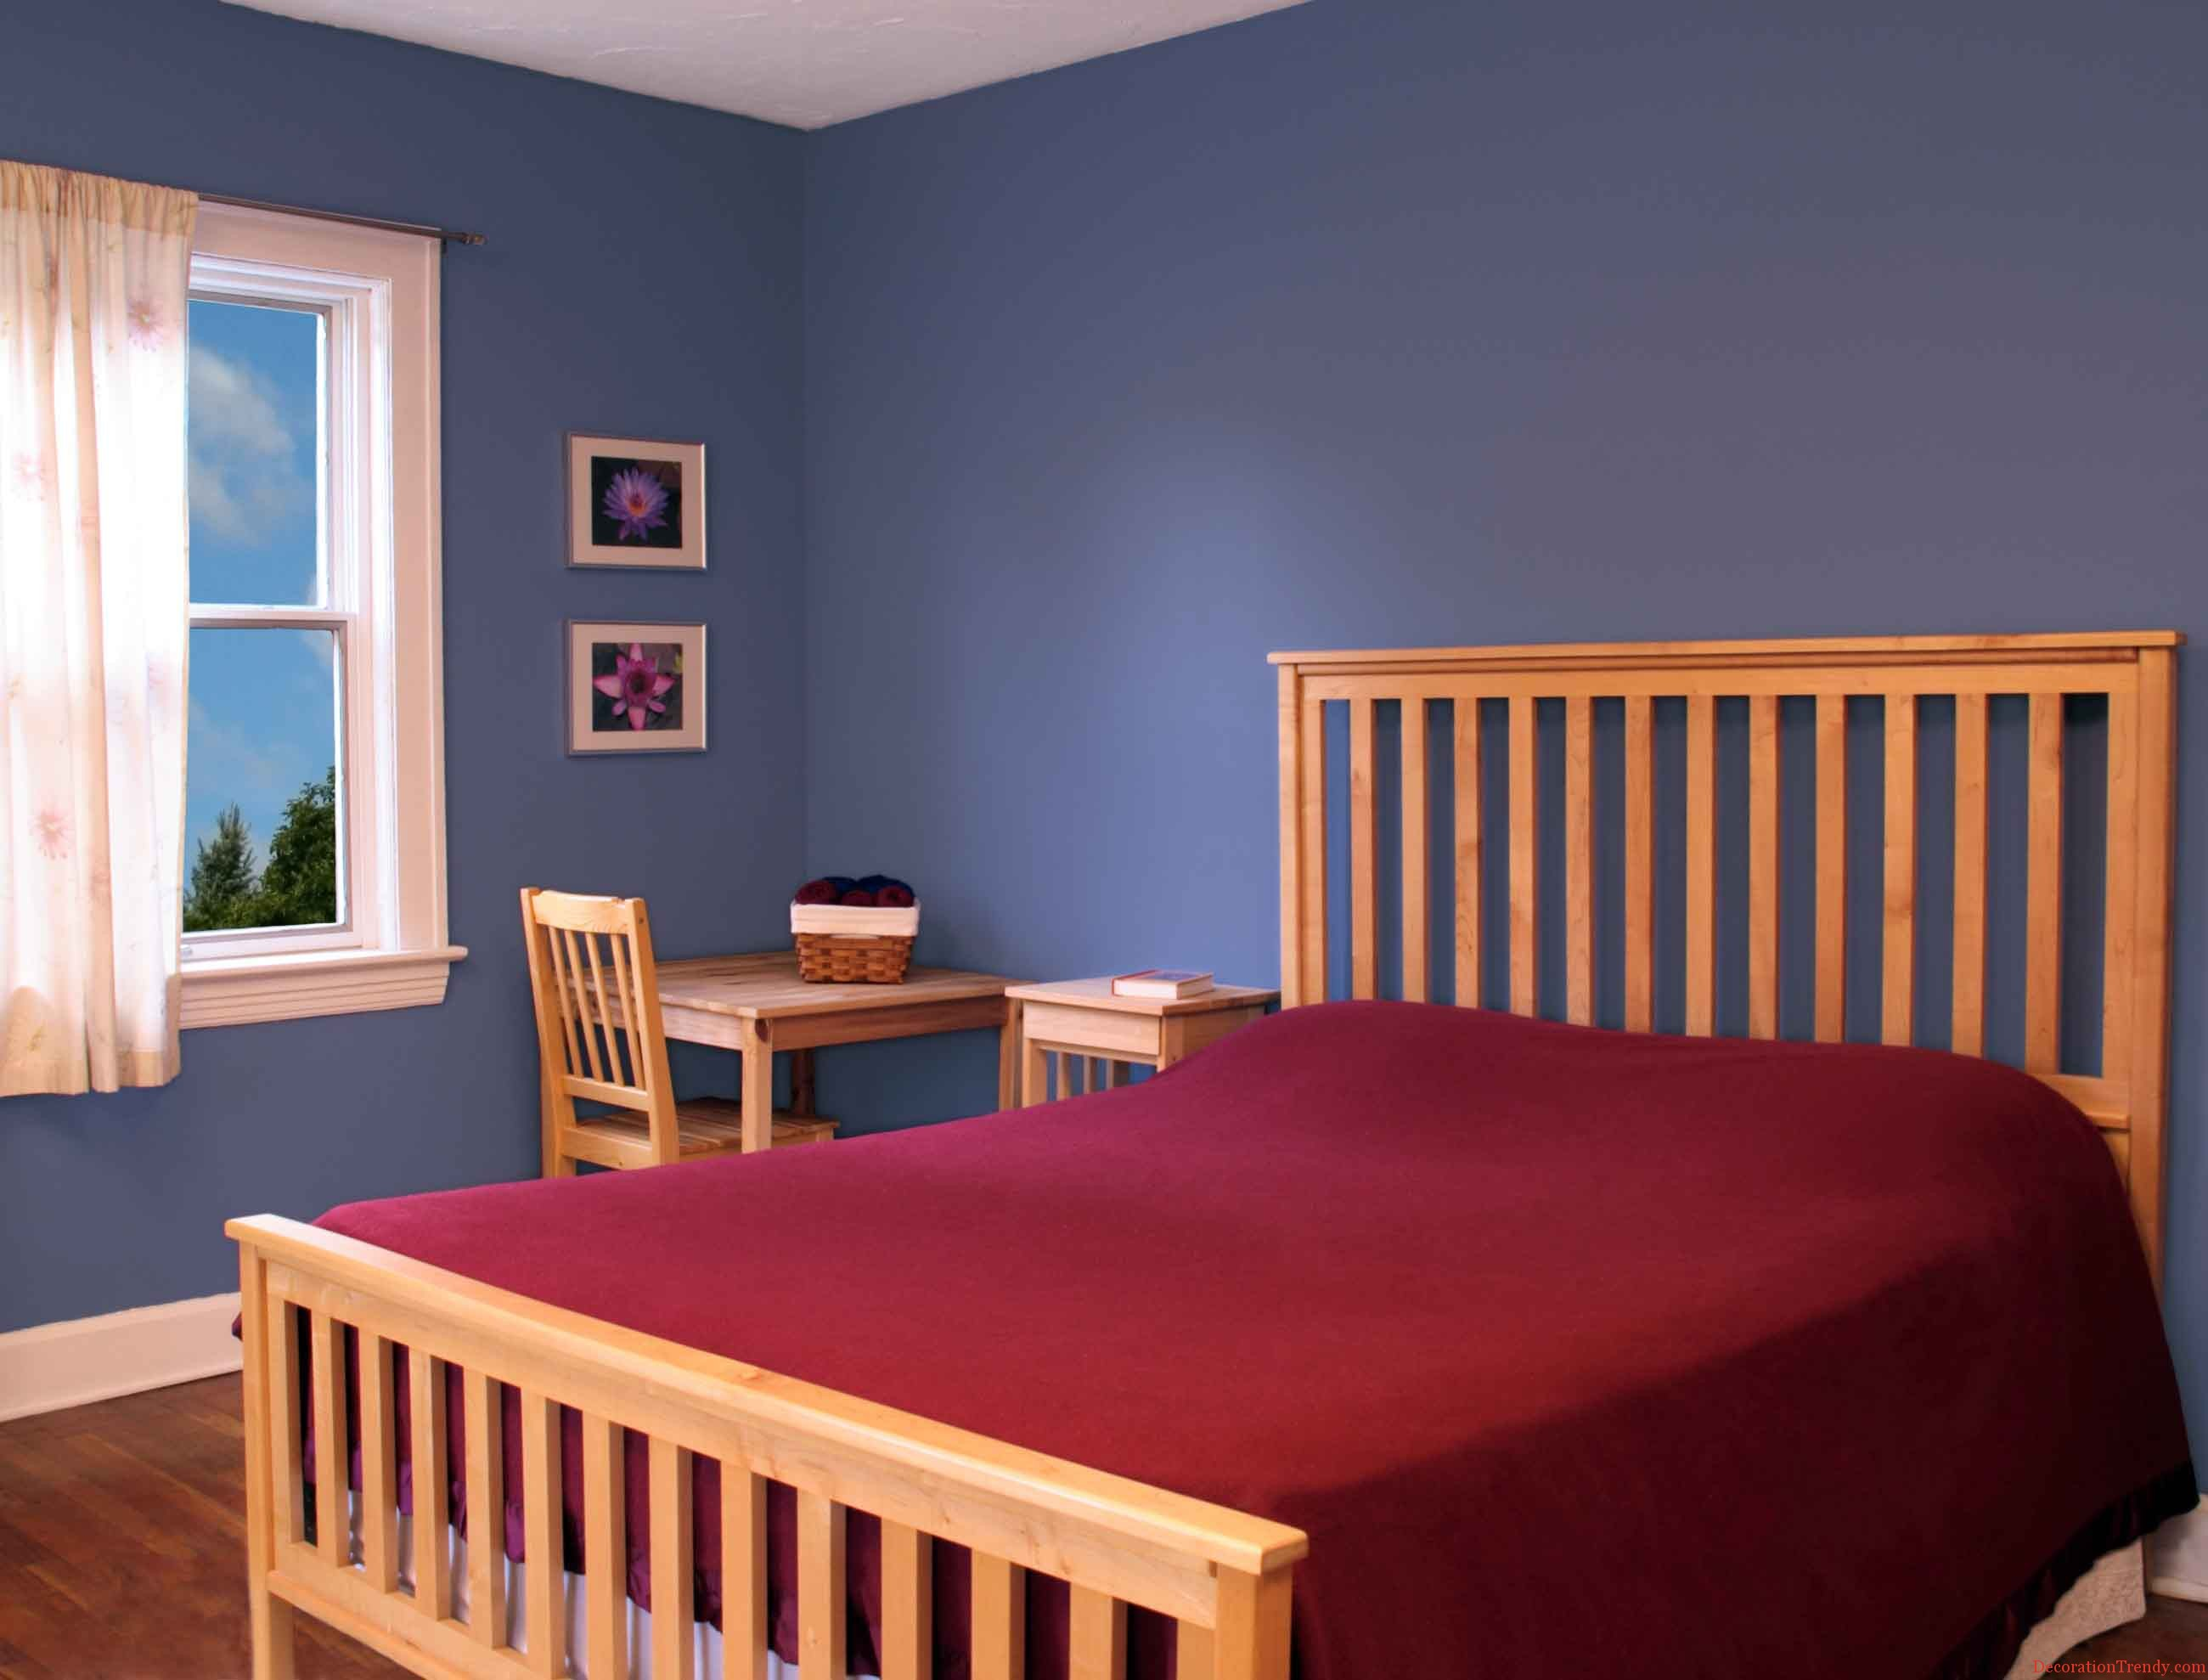 Stunning Design Of Blue Wall Color Ideas With Brown Wooden Bed And Red Bed Cover Ideas